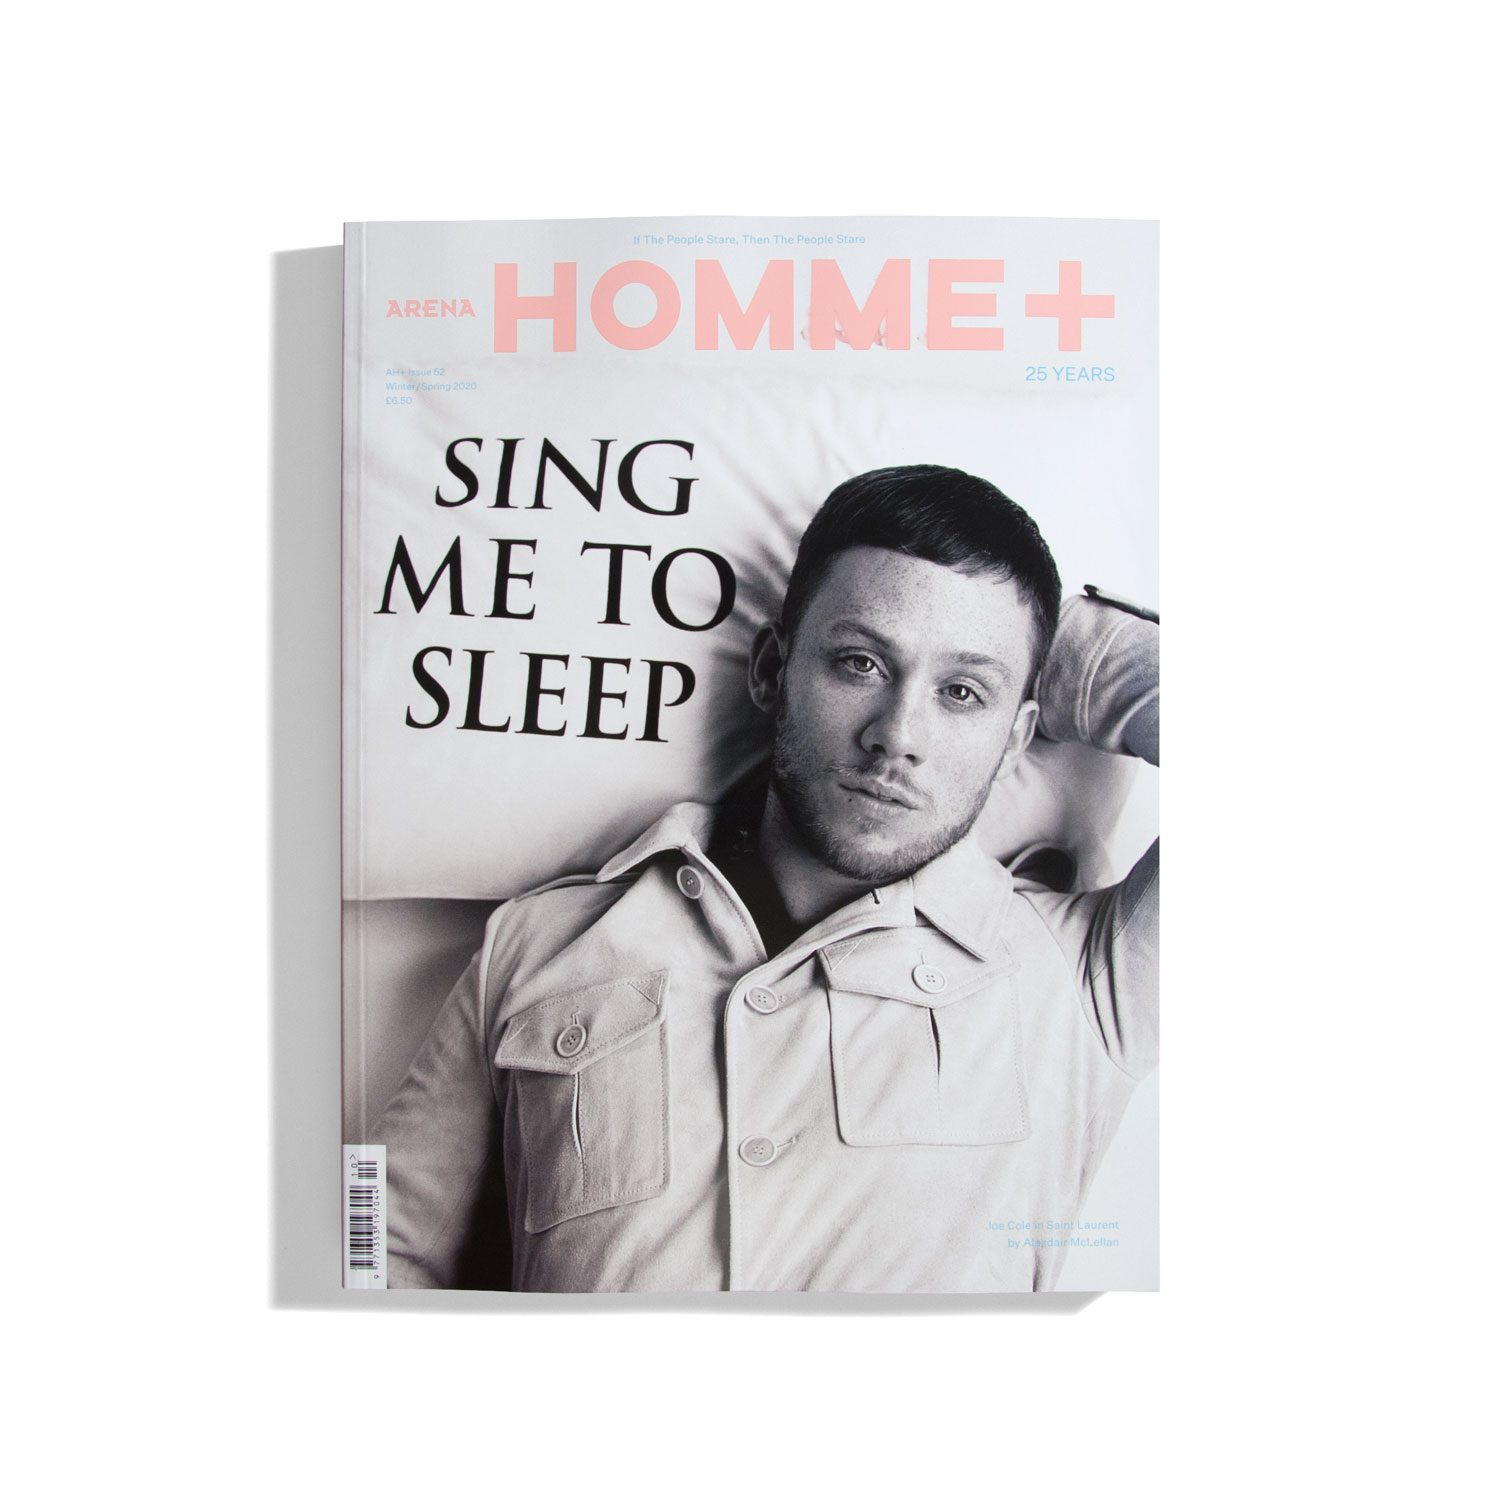 Arena Homme+ #52 W/S 2019-2020